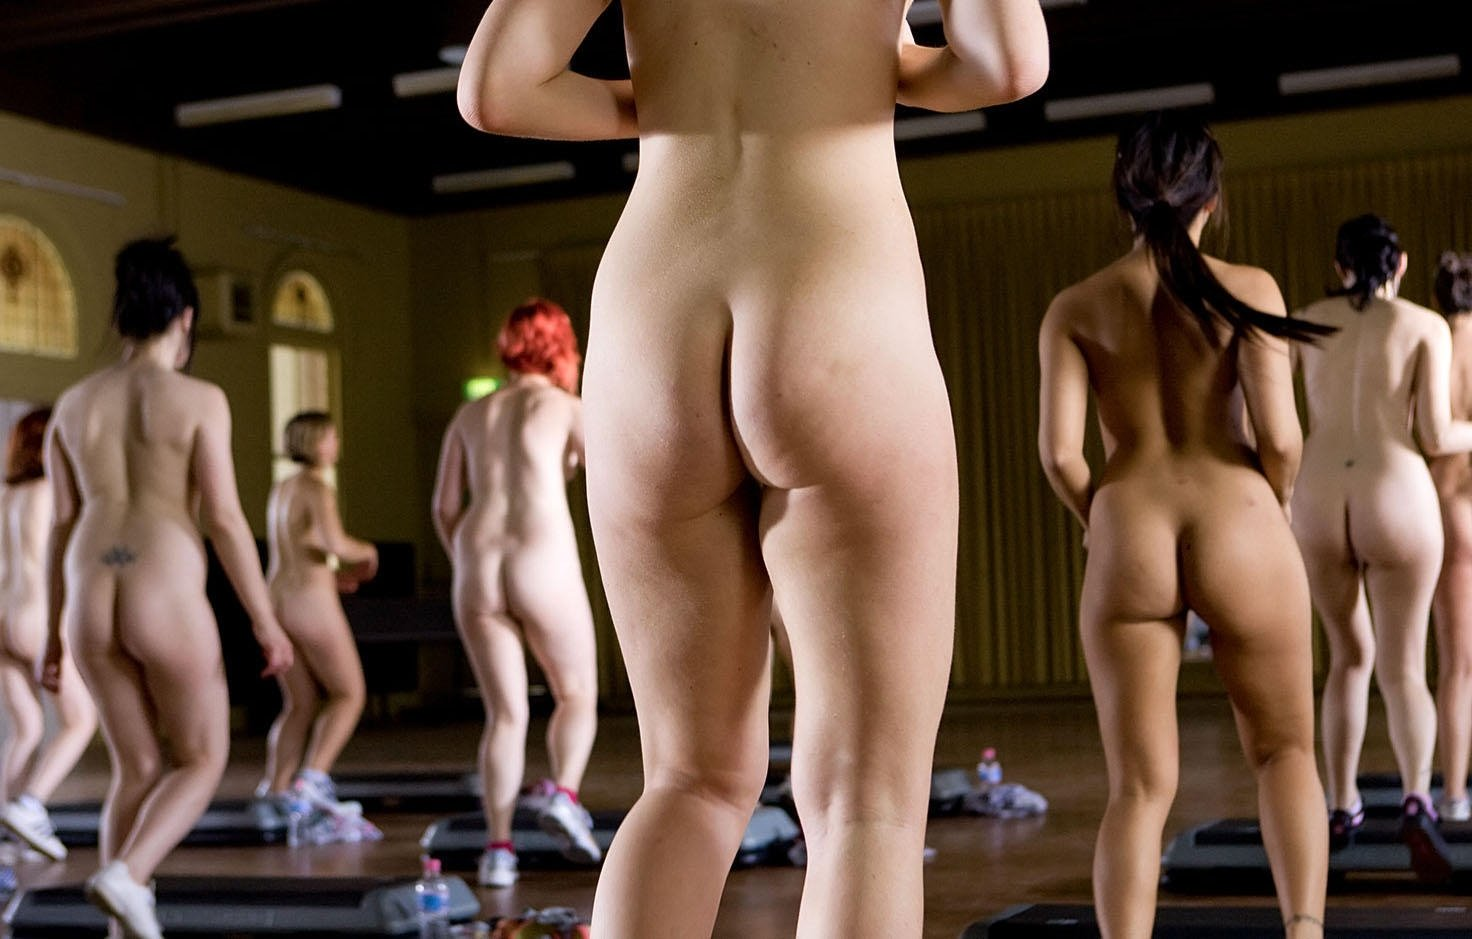 Military won't change nude bathing policy